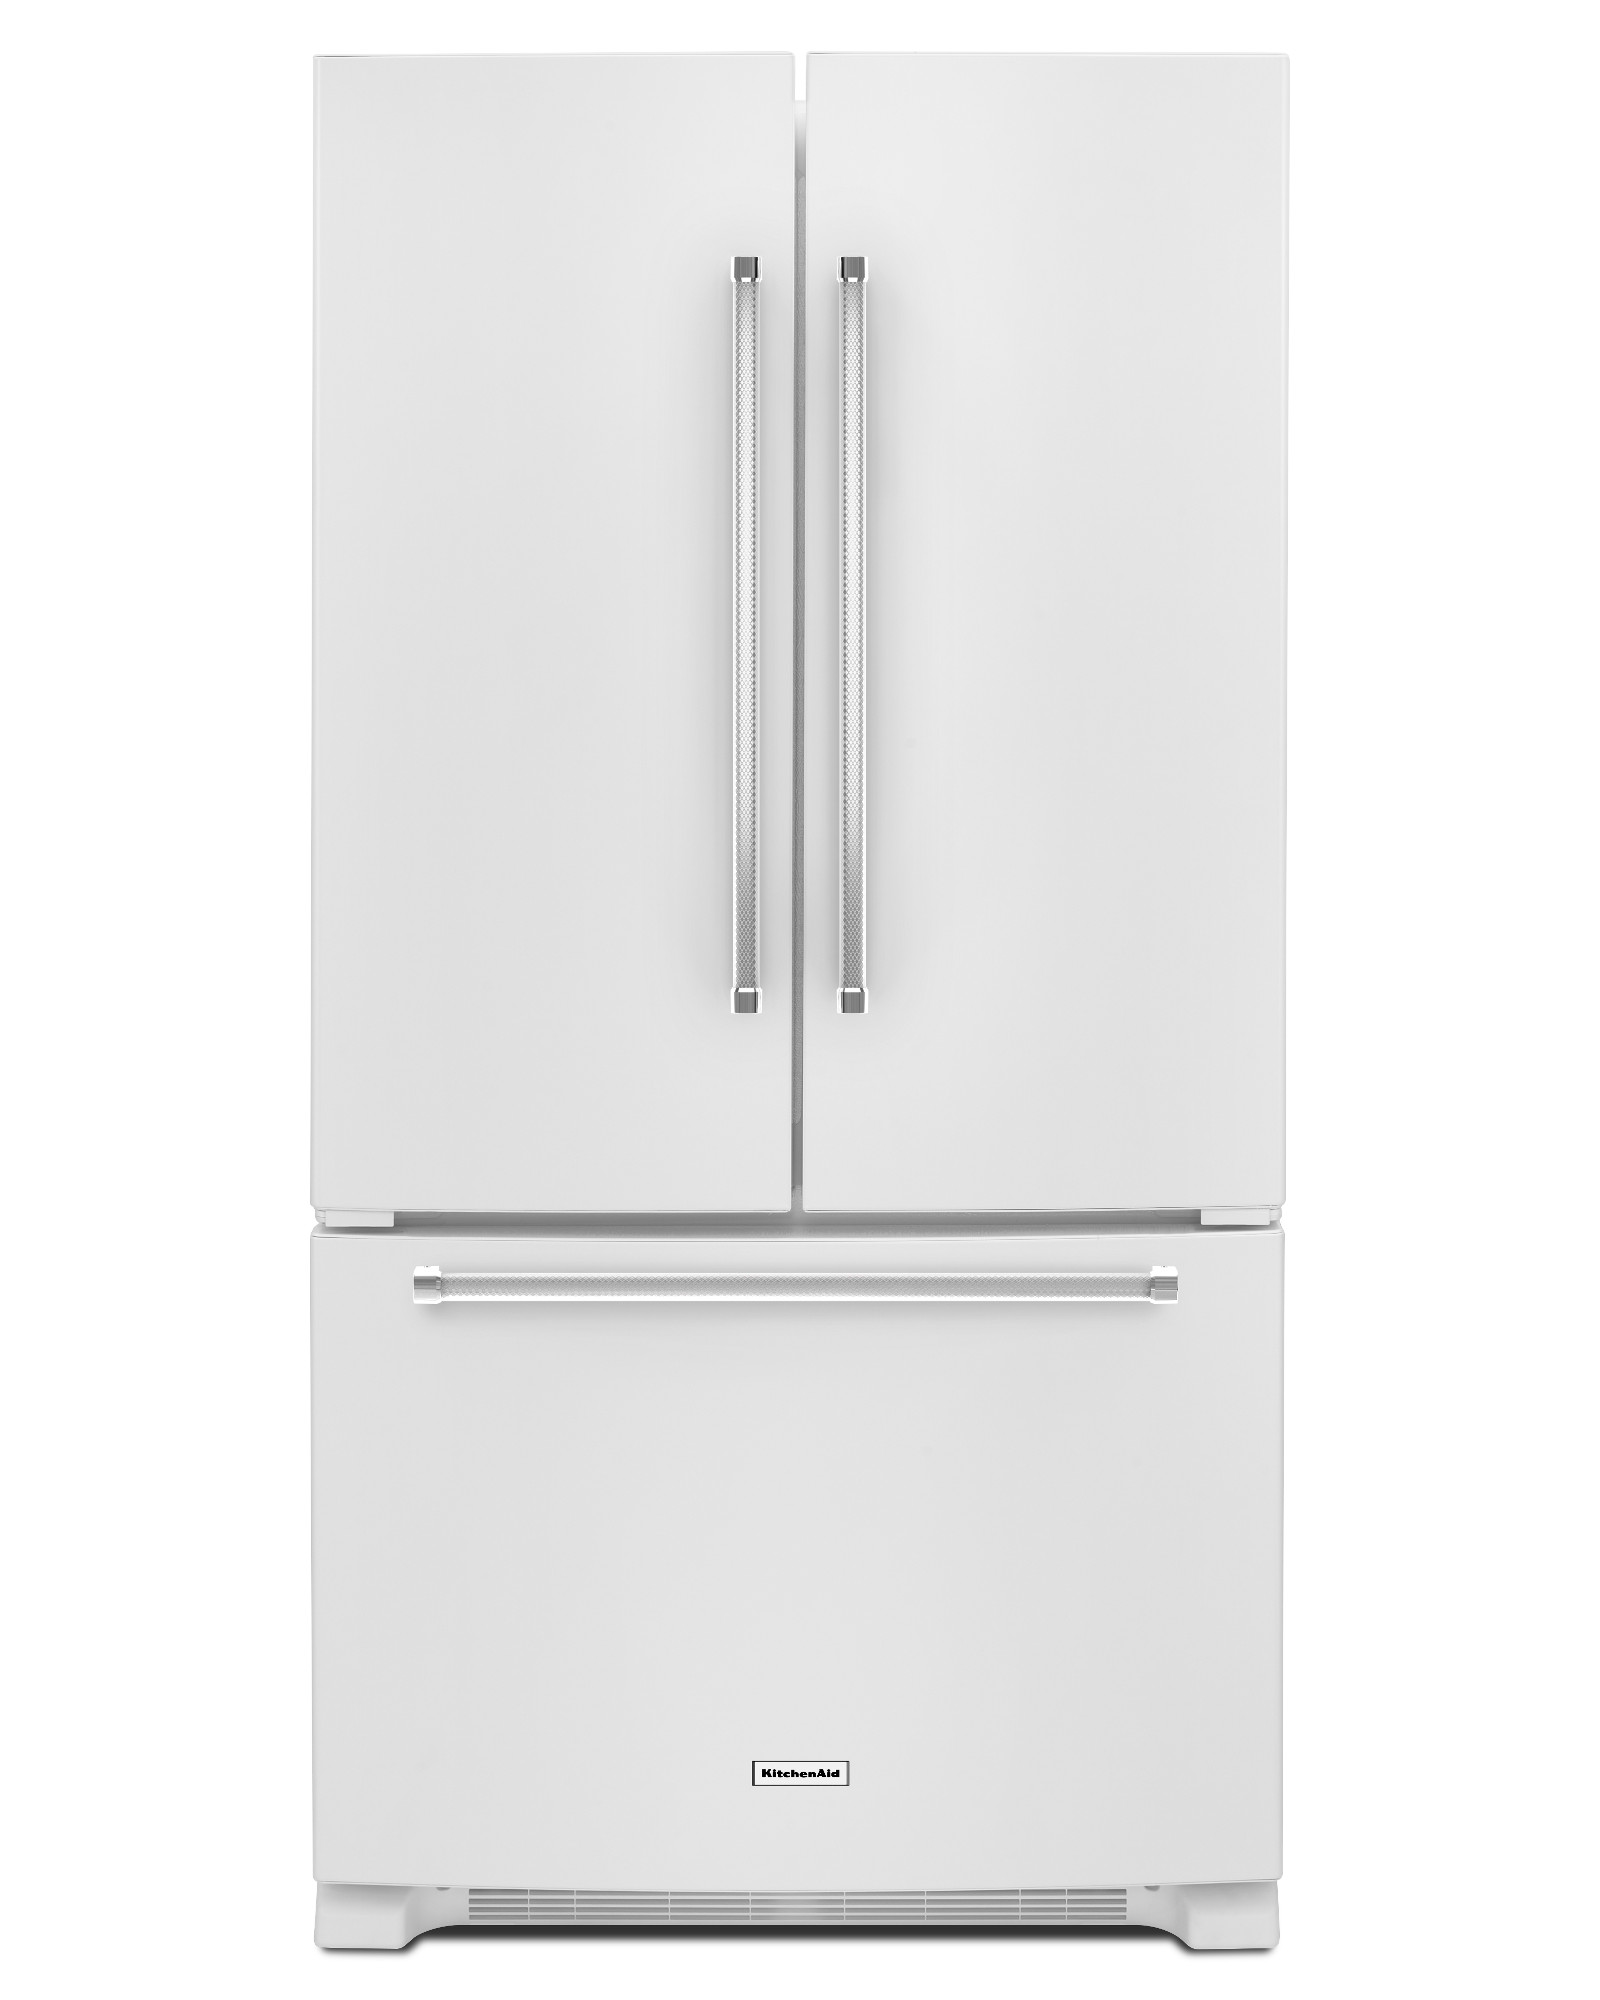 KRFC300EWH-20-cu-ft-Counter-Depth-French-Door-Refrigerator-White